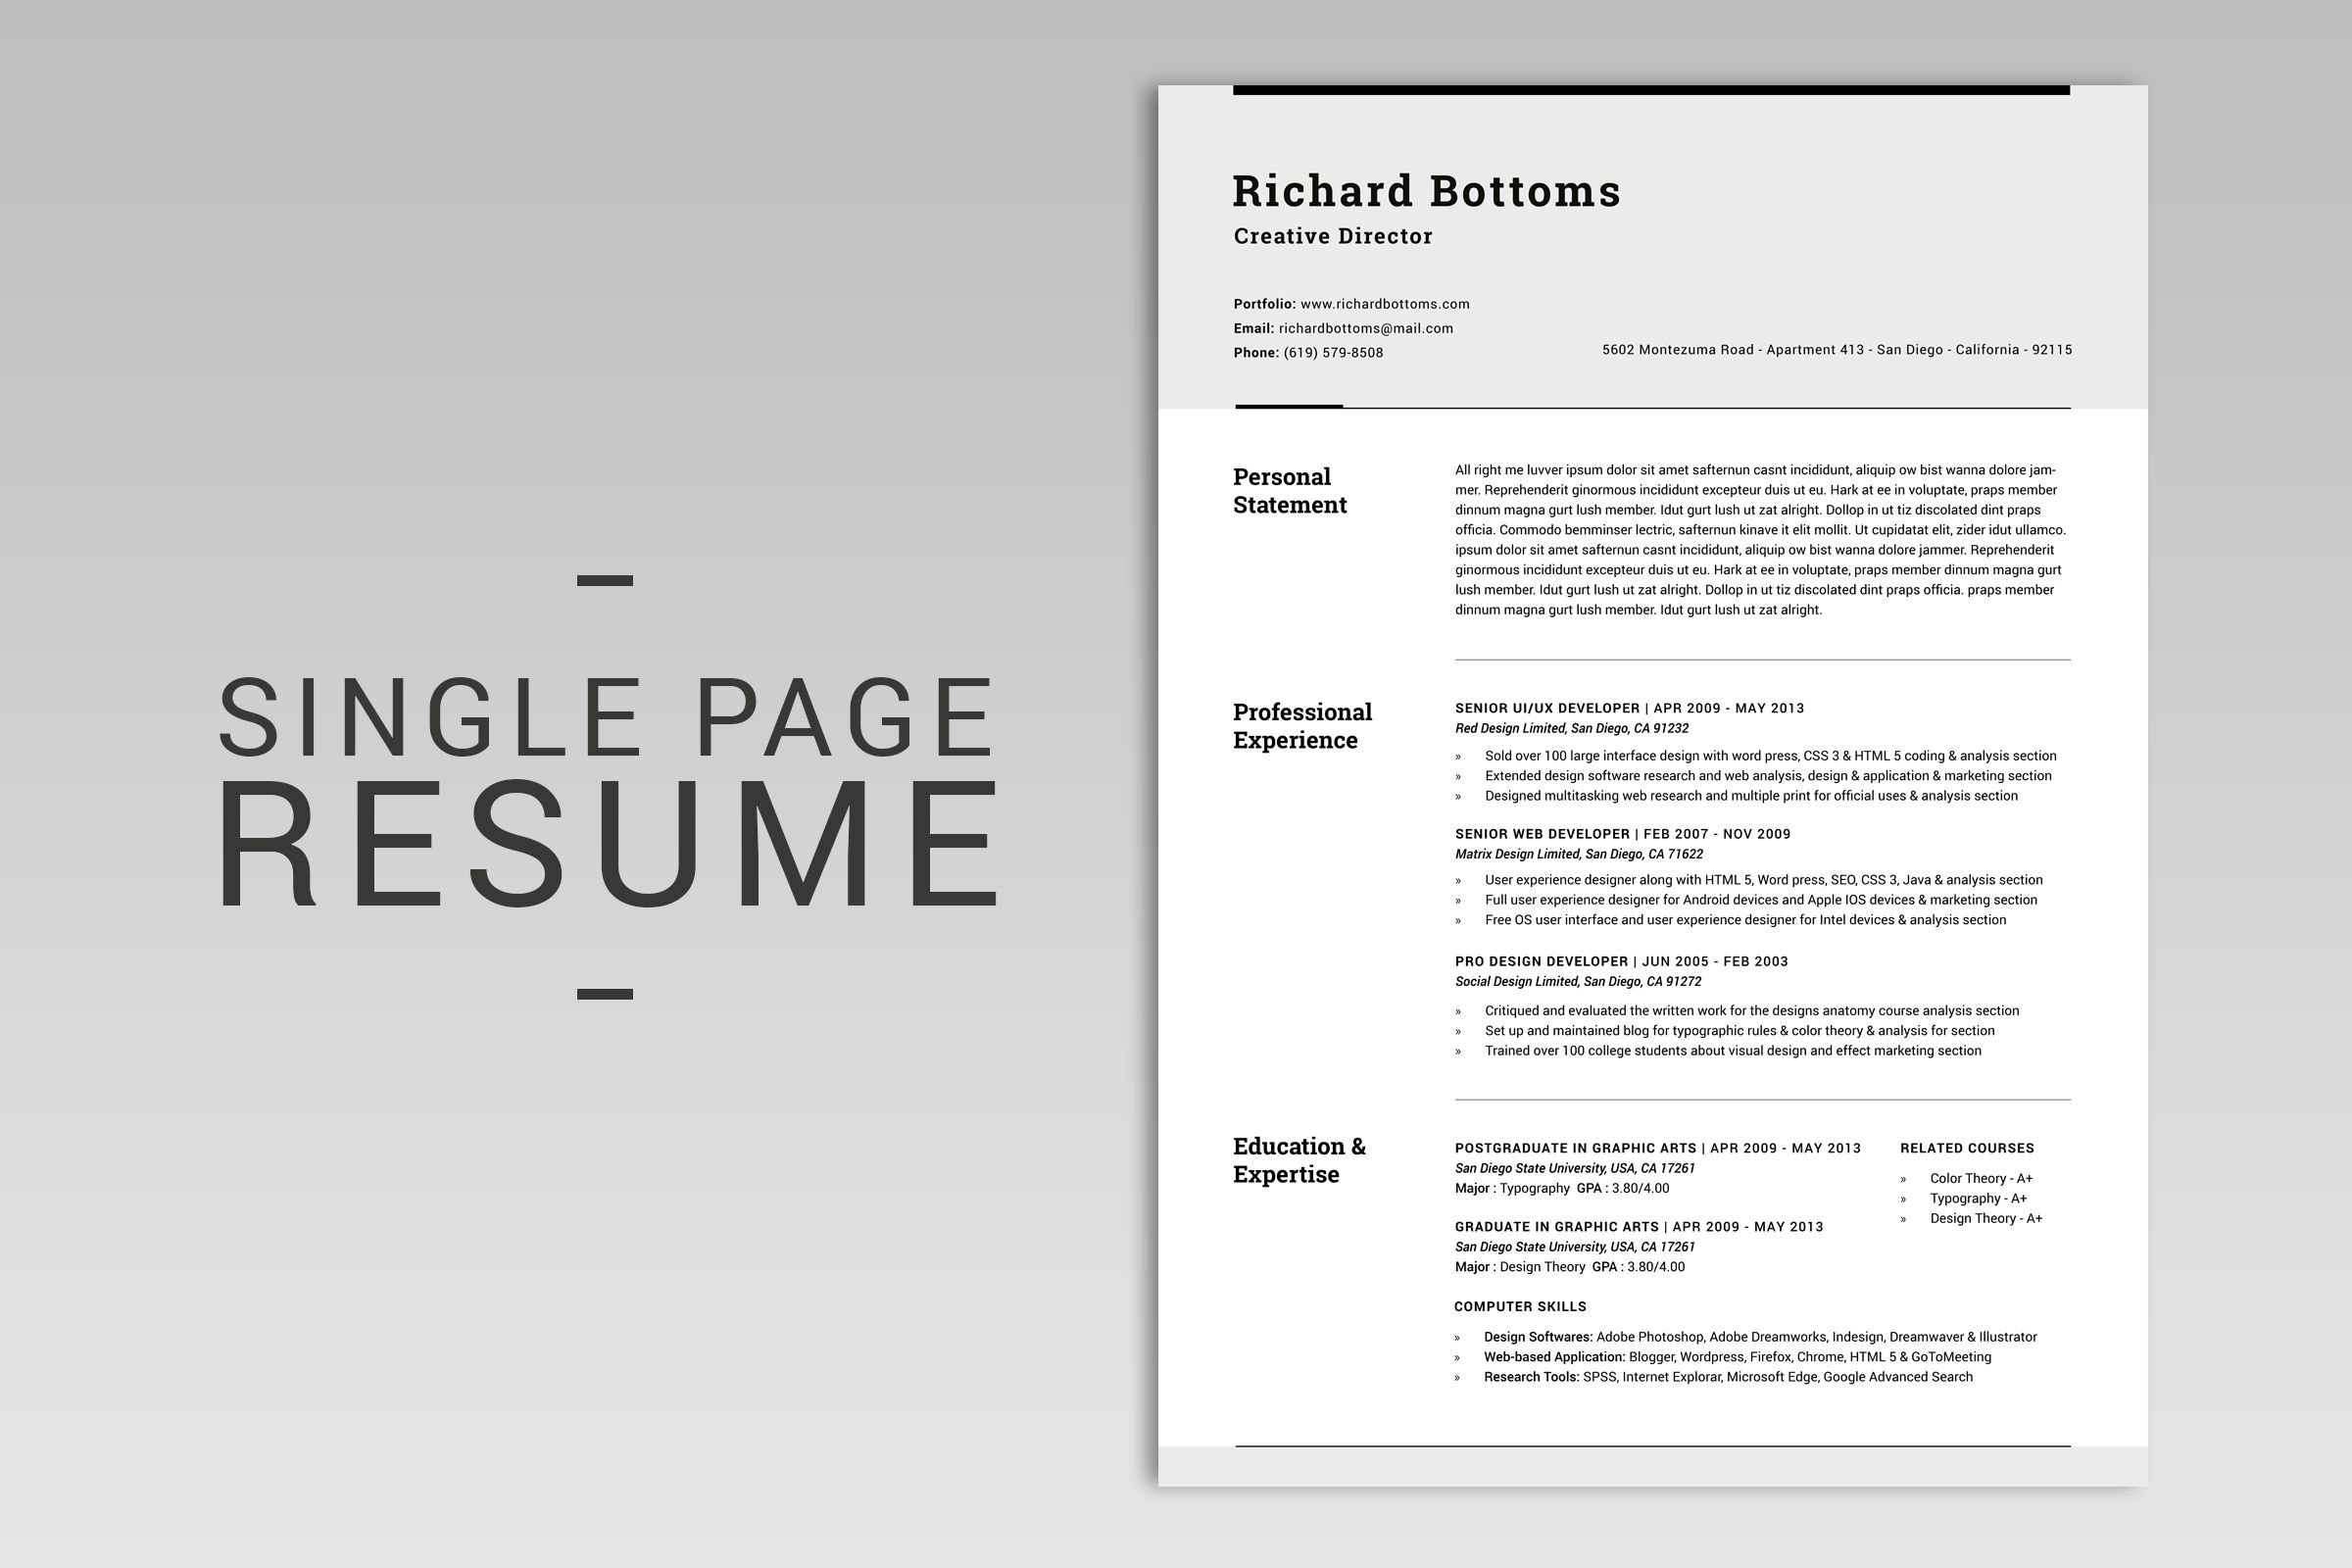 all in one modern resume box v 2 by snipescientist on  creativemarket